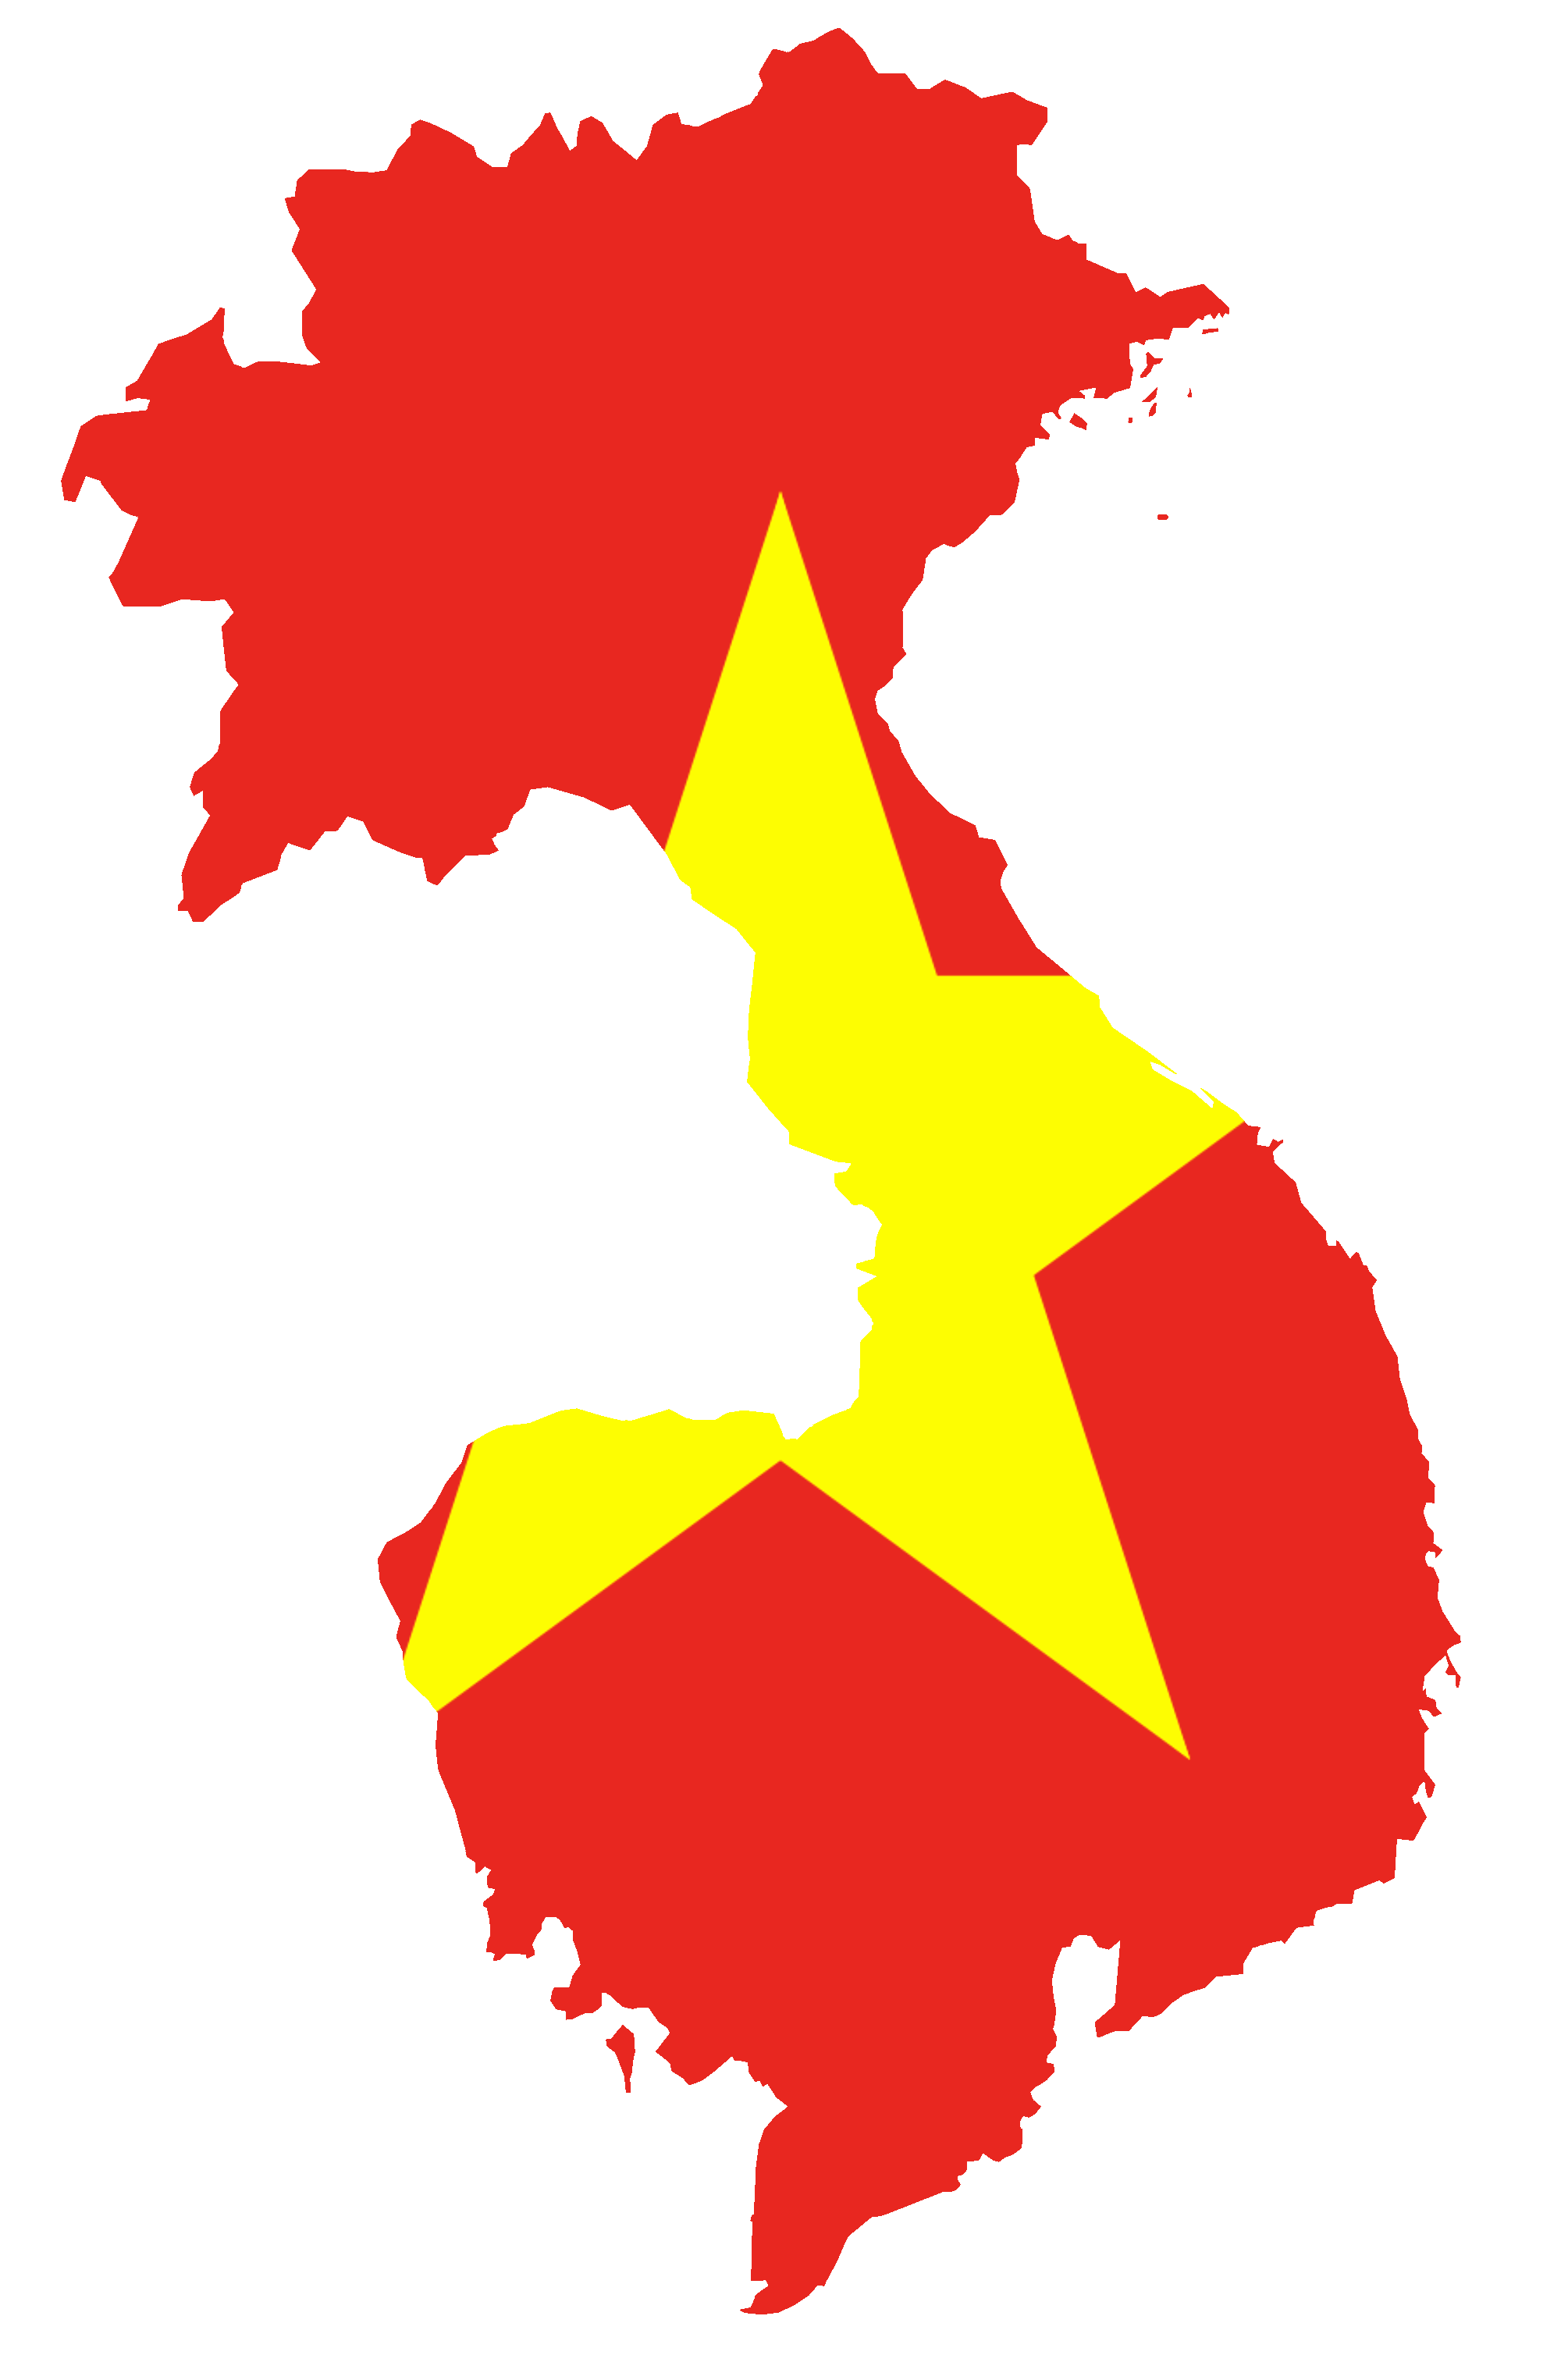 File:Flag map of Greater Vietnam.png.